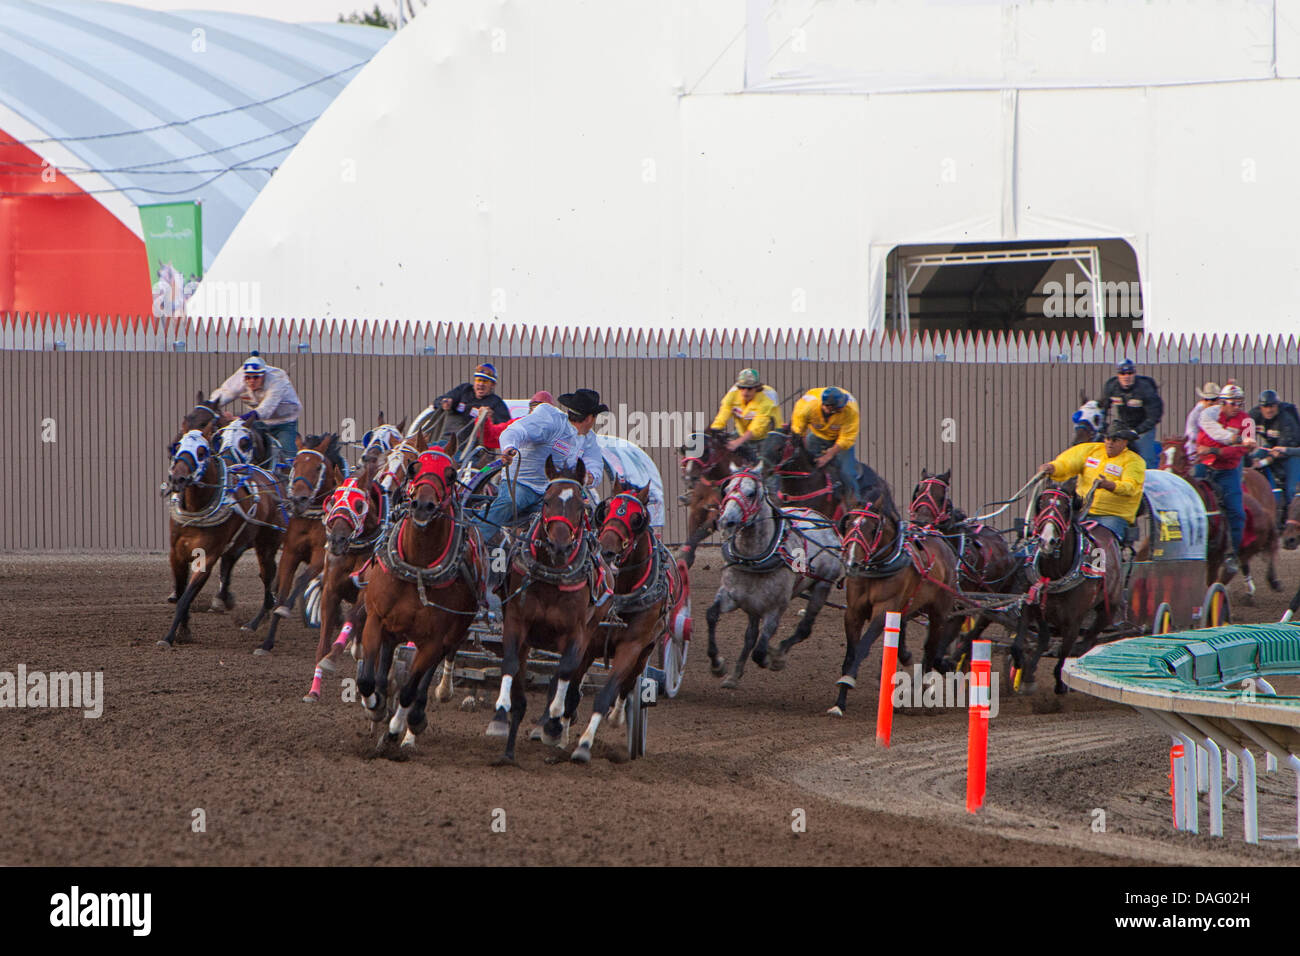 Chuck Wagon Not Color Stock Photos Amp Chuck Wagon Not Color Stock Images Alamy